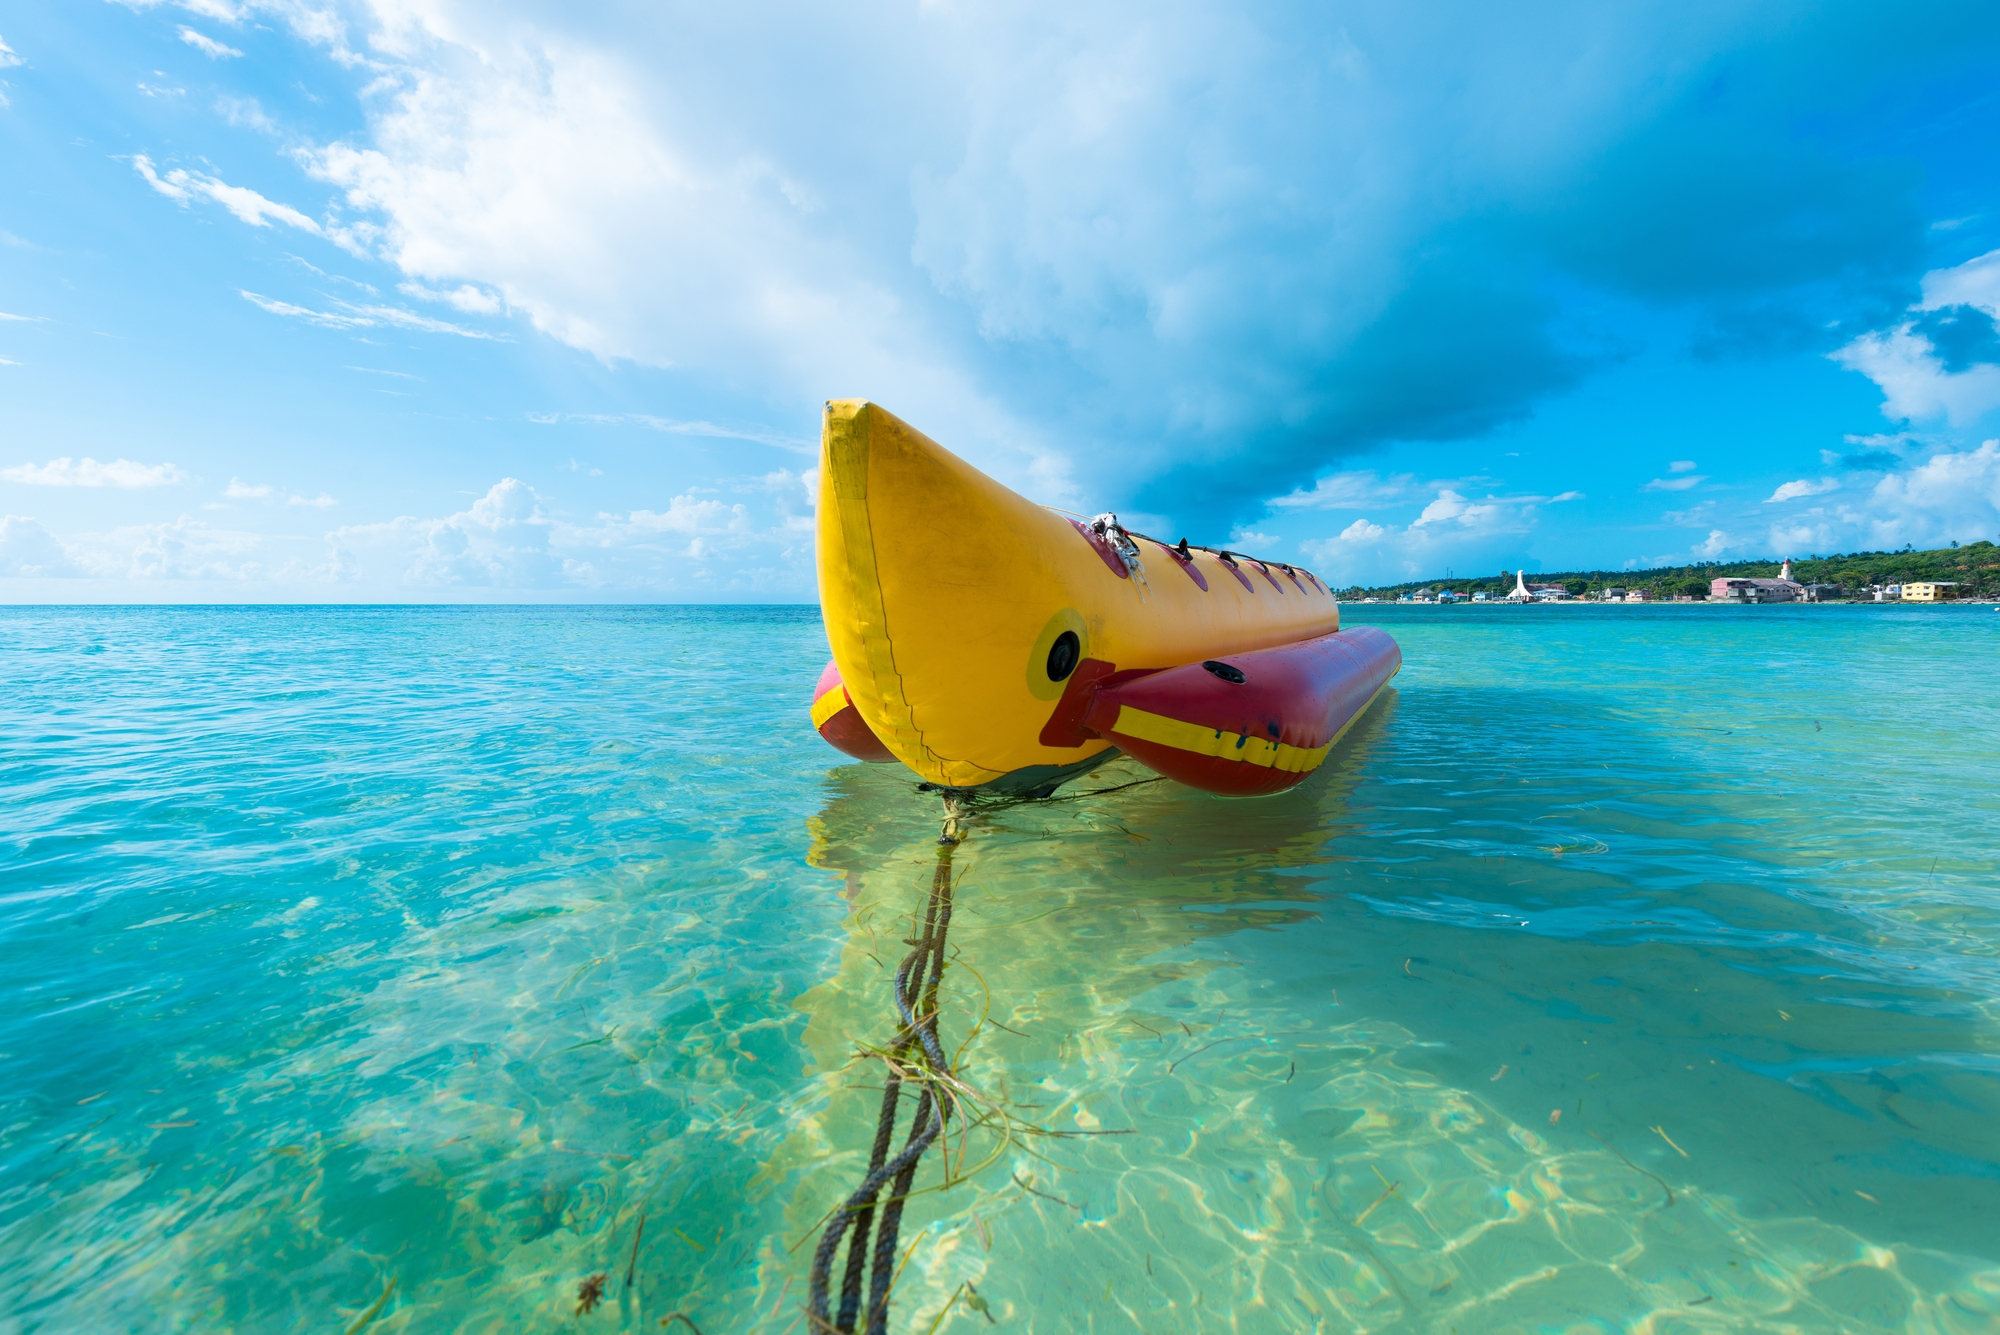 Hotel sol caribe sea flower turista for Sol caribe sea flower san andres